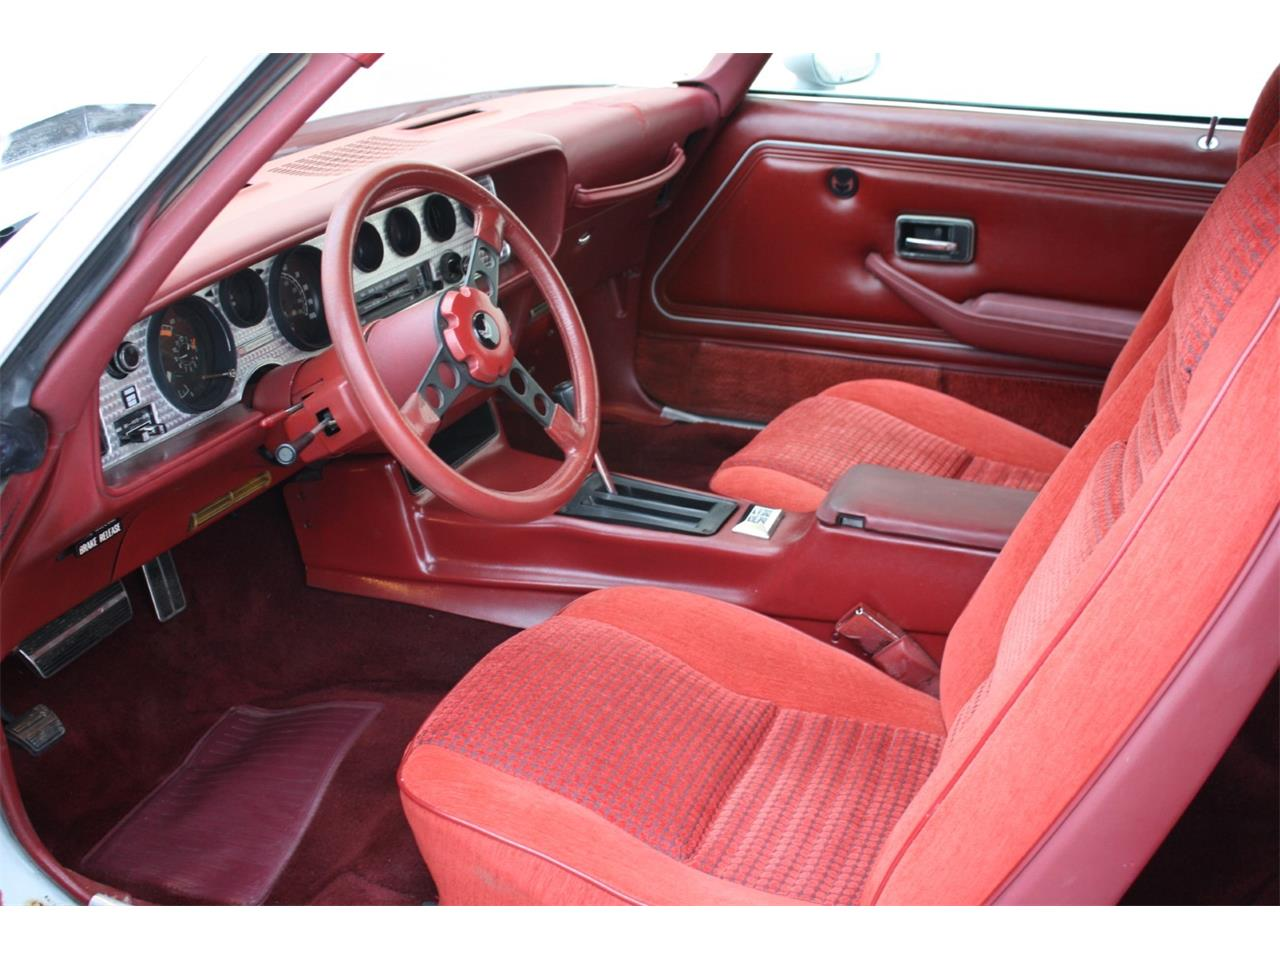 Large Picture of 1979 Pontiac Firebird Trans Am Auction Vehicle Offered by Lucky Collector Car Auctions - Q67P